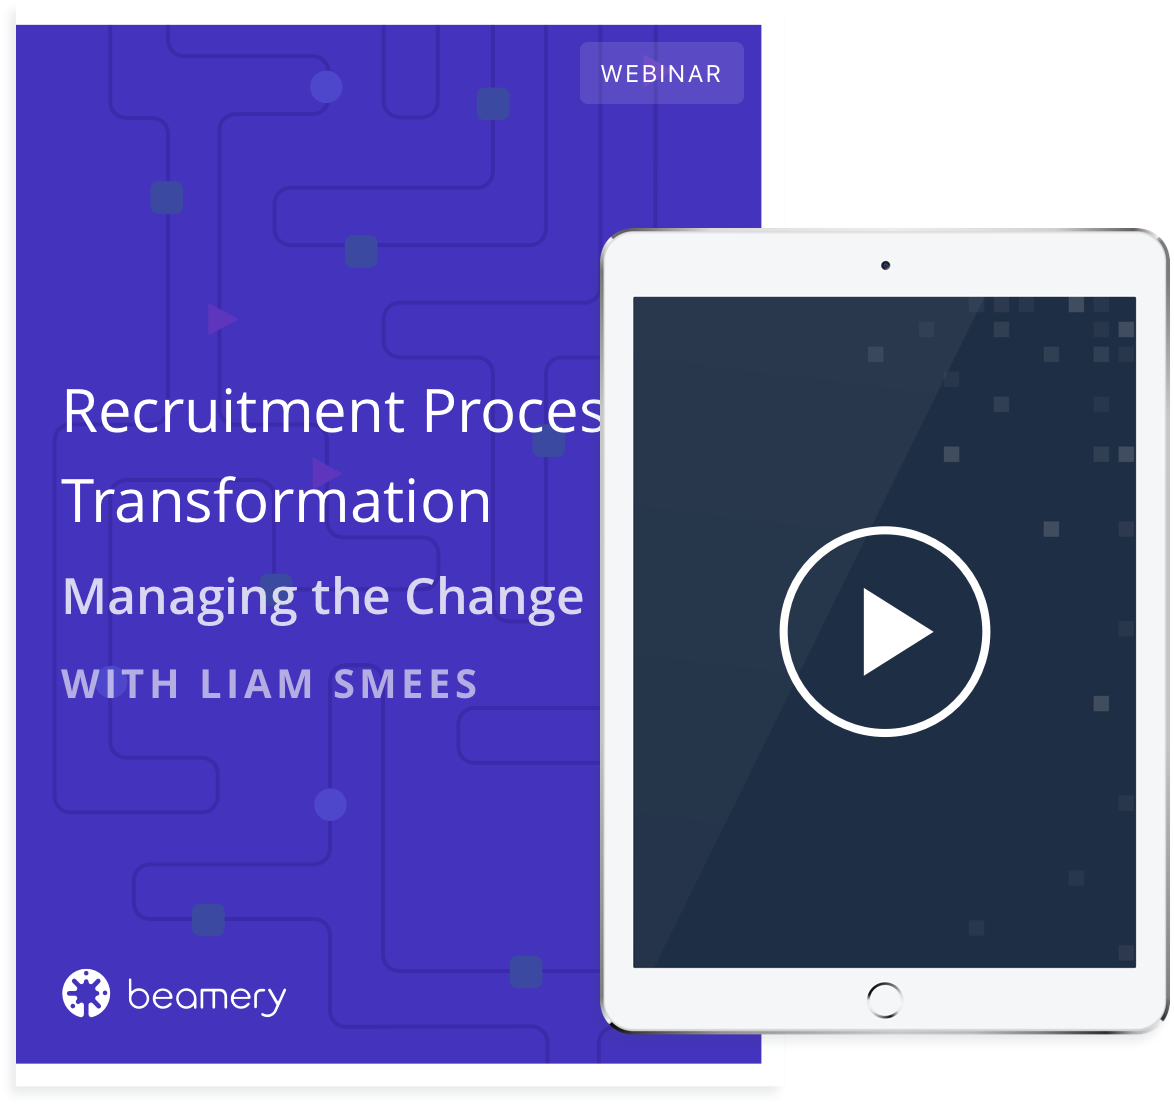 Recruitment Process Transformation: Managing the Change